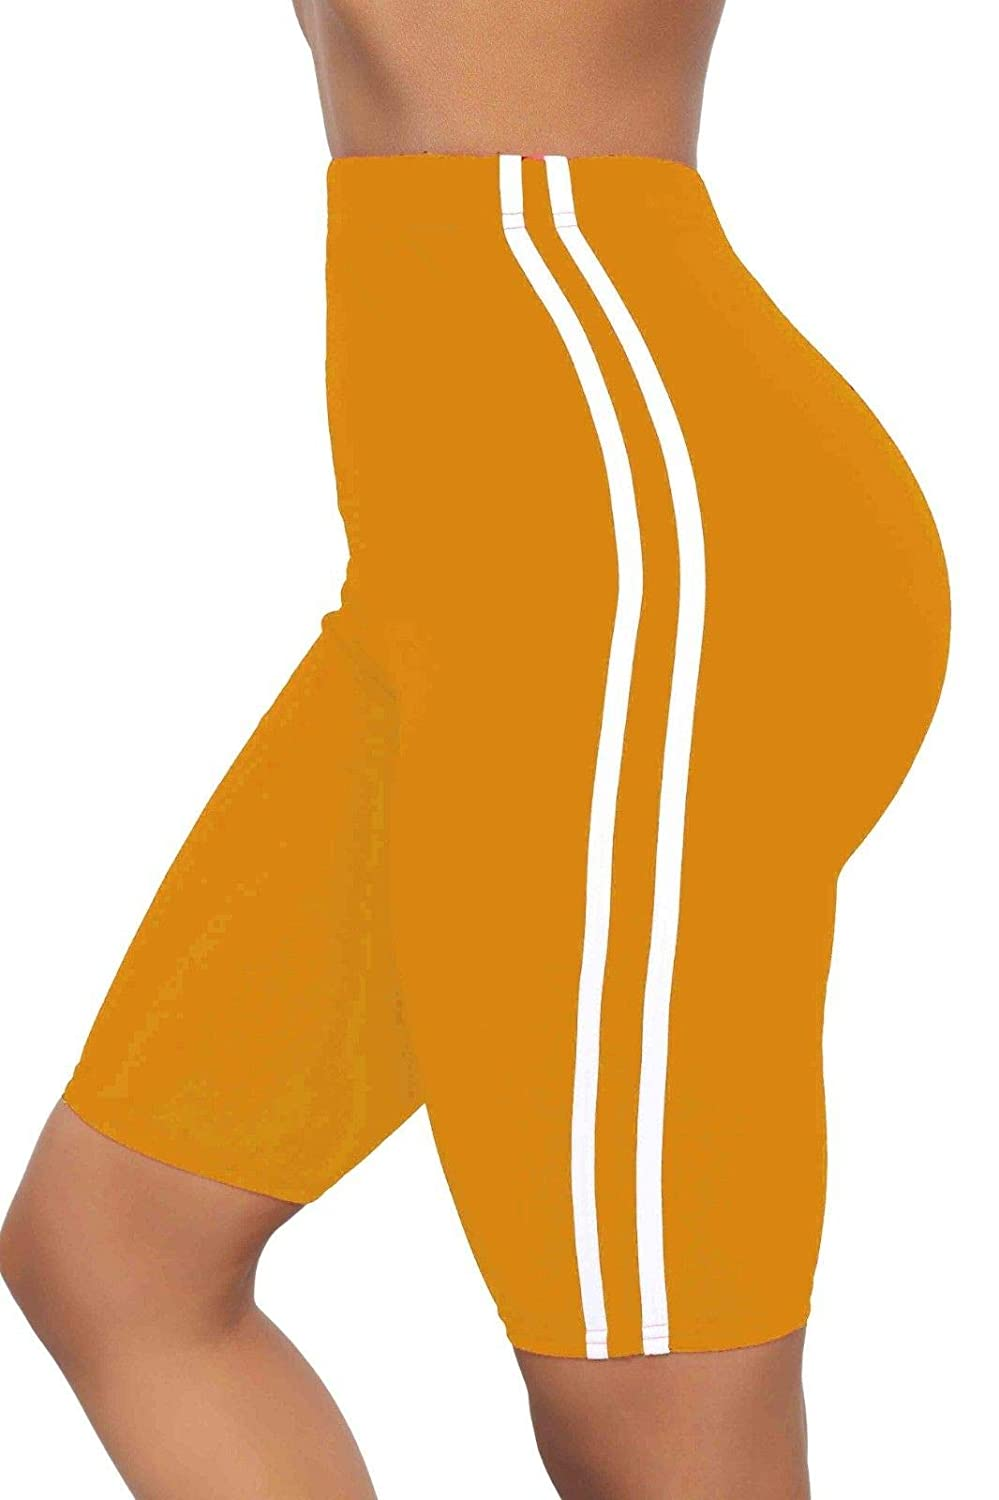 The Celebrity Fashion Womens Active Gym Side Stripe Cycling Over-Knee Shorts Tights Biker Hot Pants